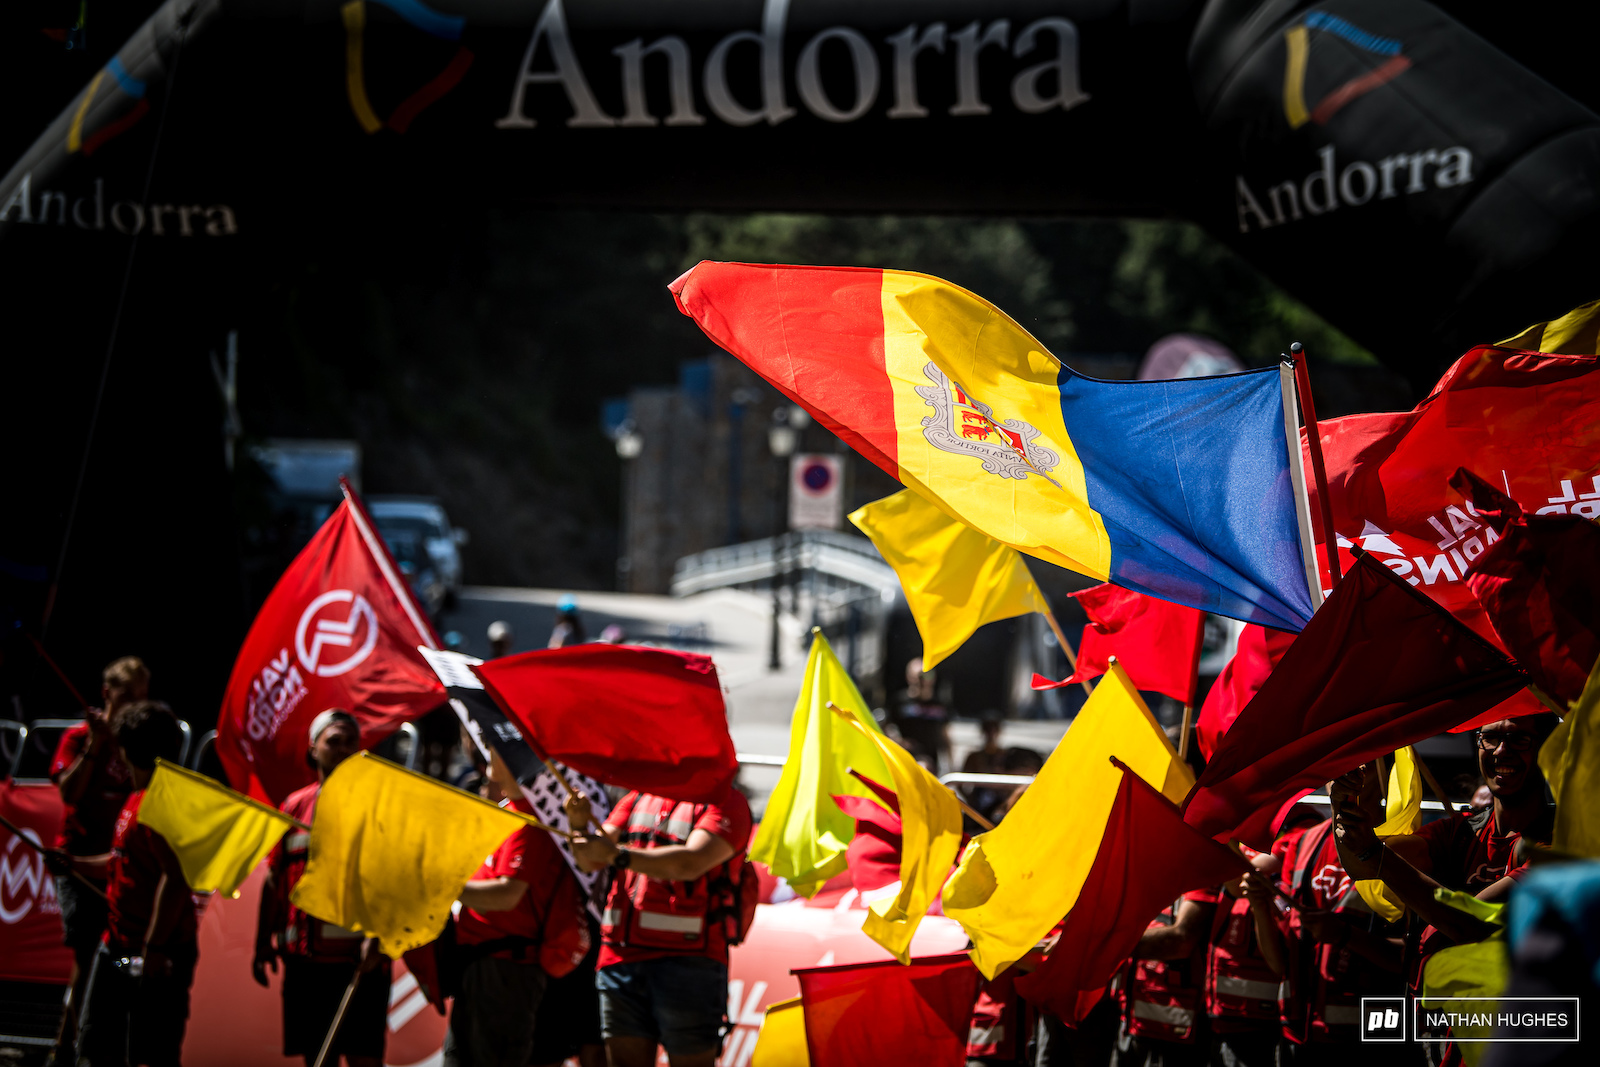 Thanks for hosting Vallnord Andorra. That was one fine competition. Onwards to round 5.